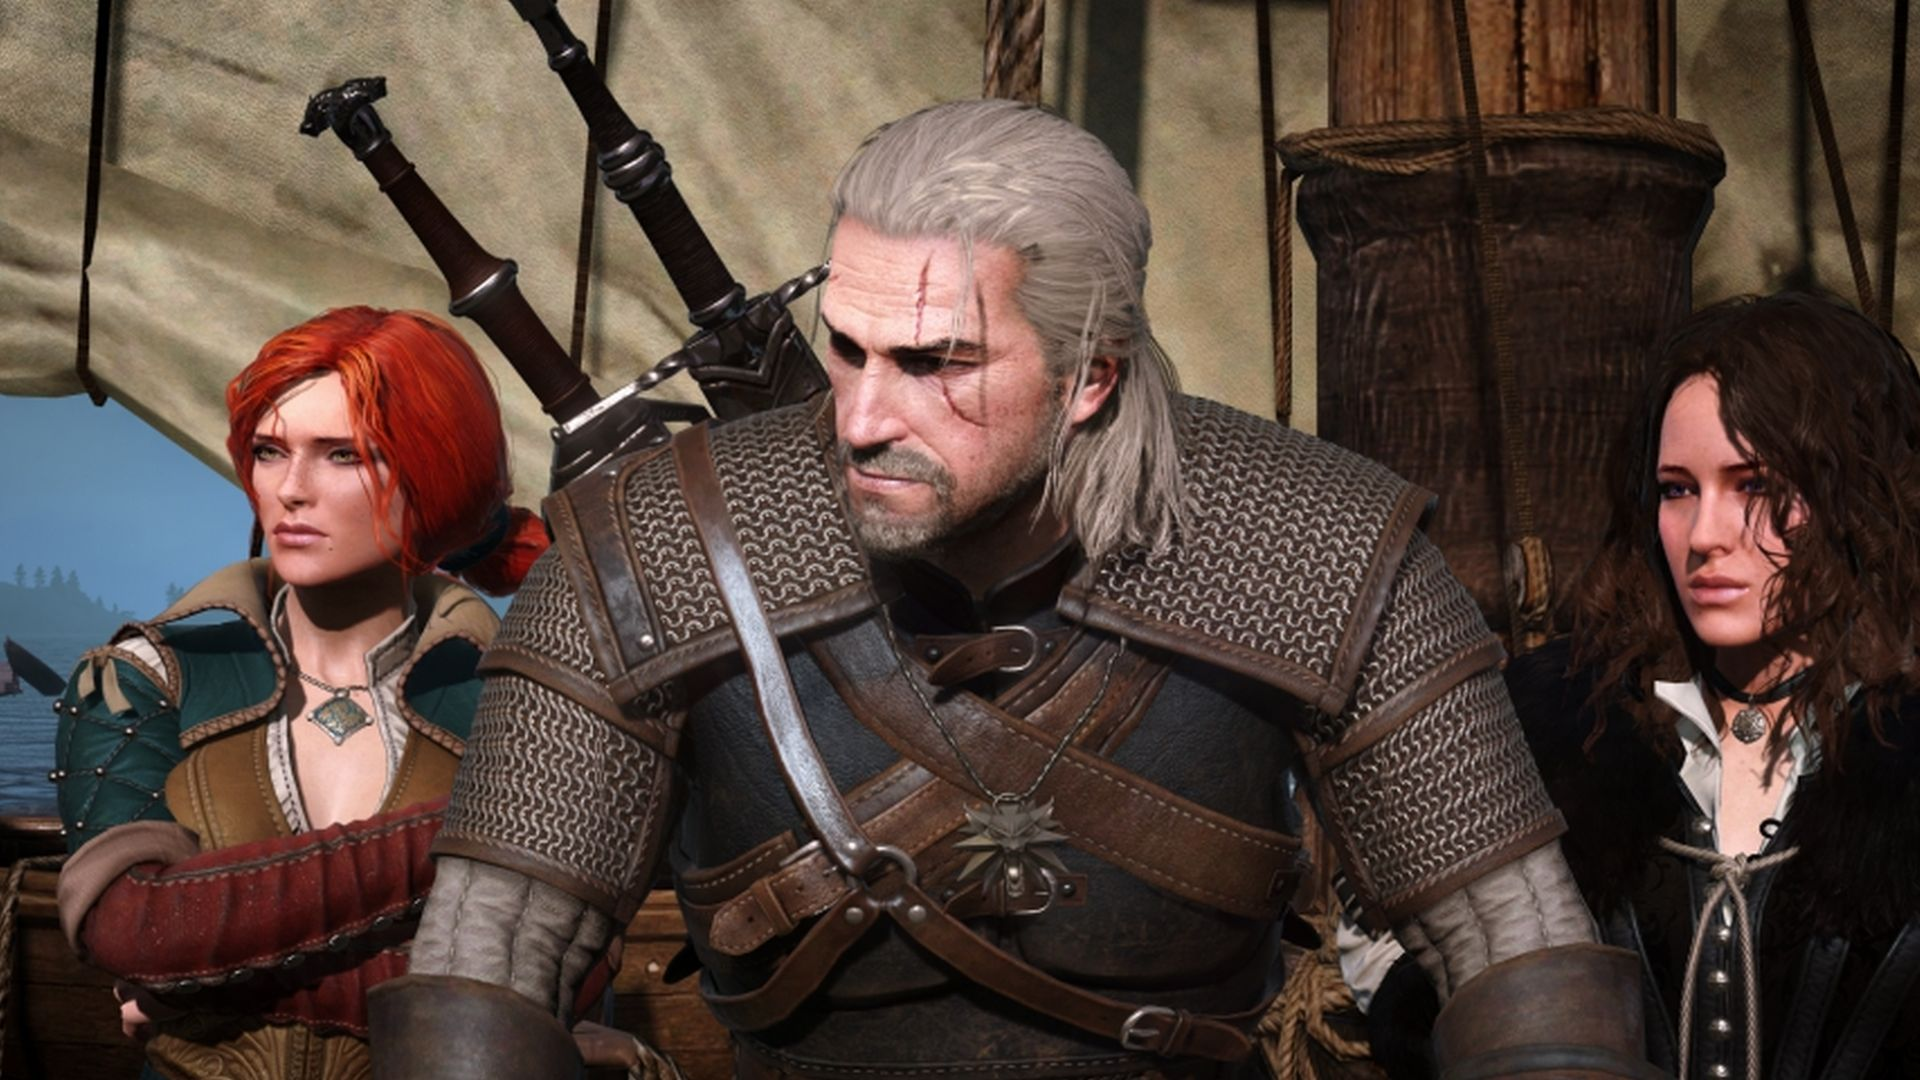 Hot off the Netflix show, Witcher fans are flocking back to the games in record numbers